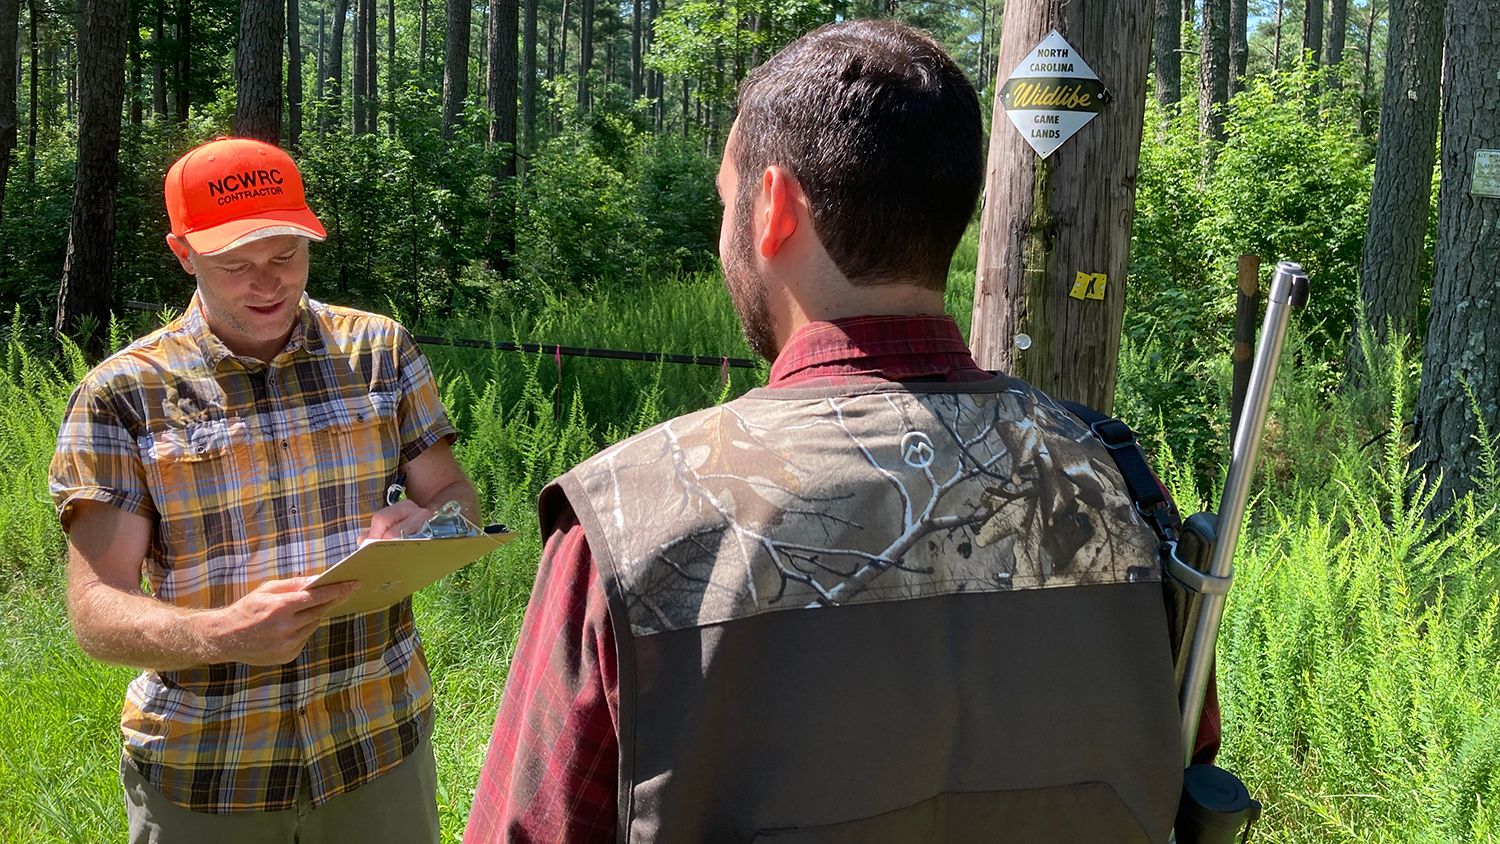 Research Project Outdoors - NC State Professor Named Natural Resources Scientist of the Year - College of Natural Resources News NC State University